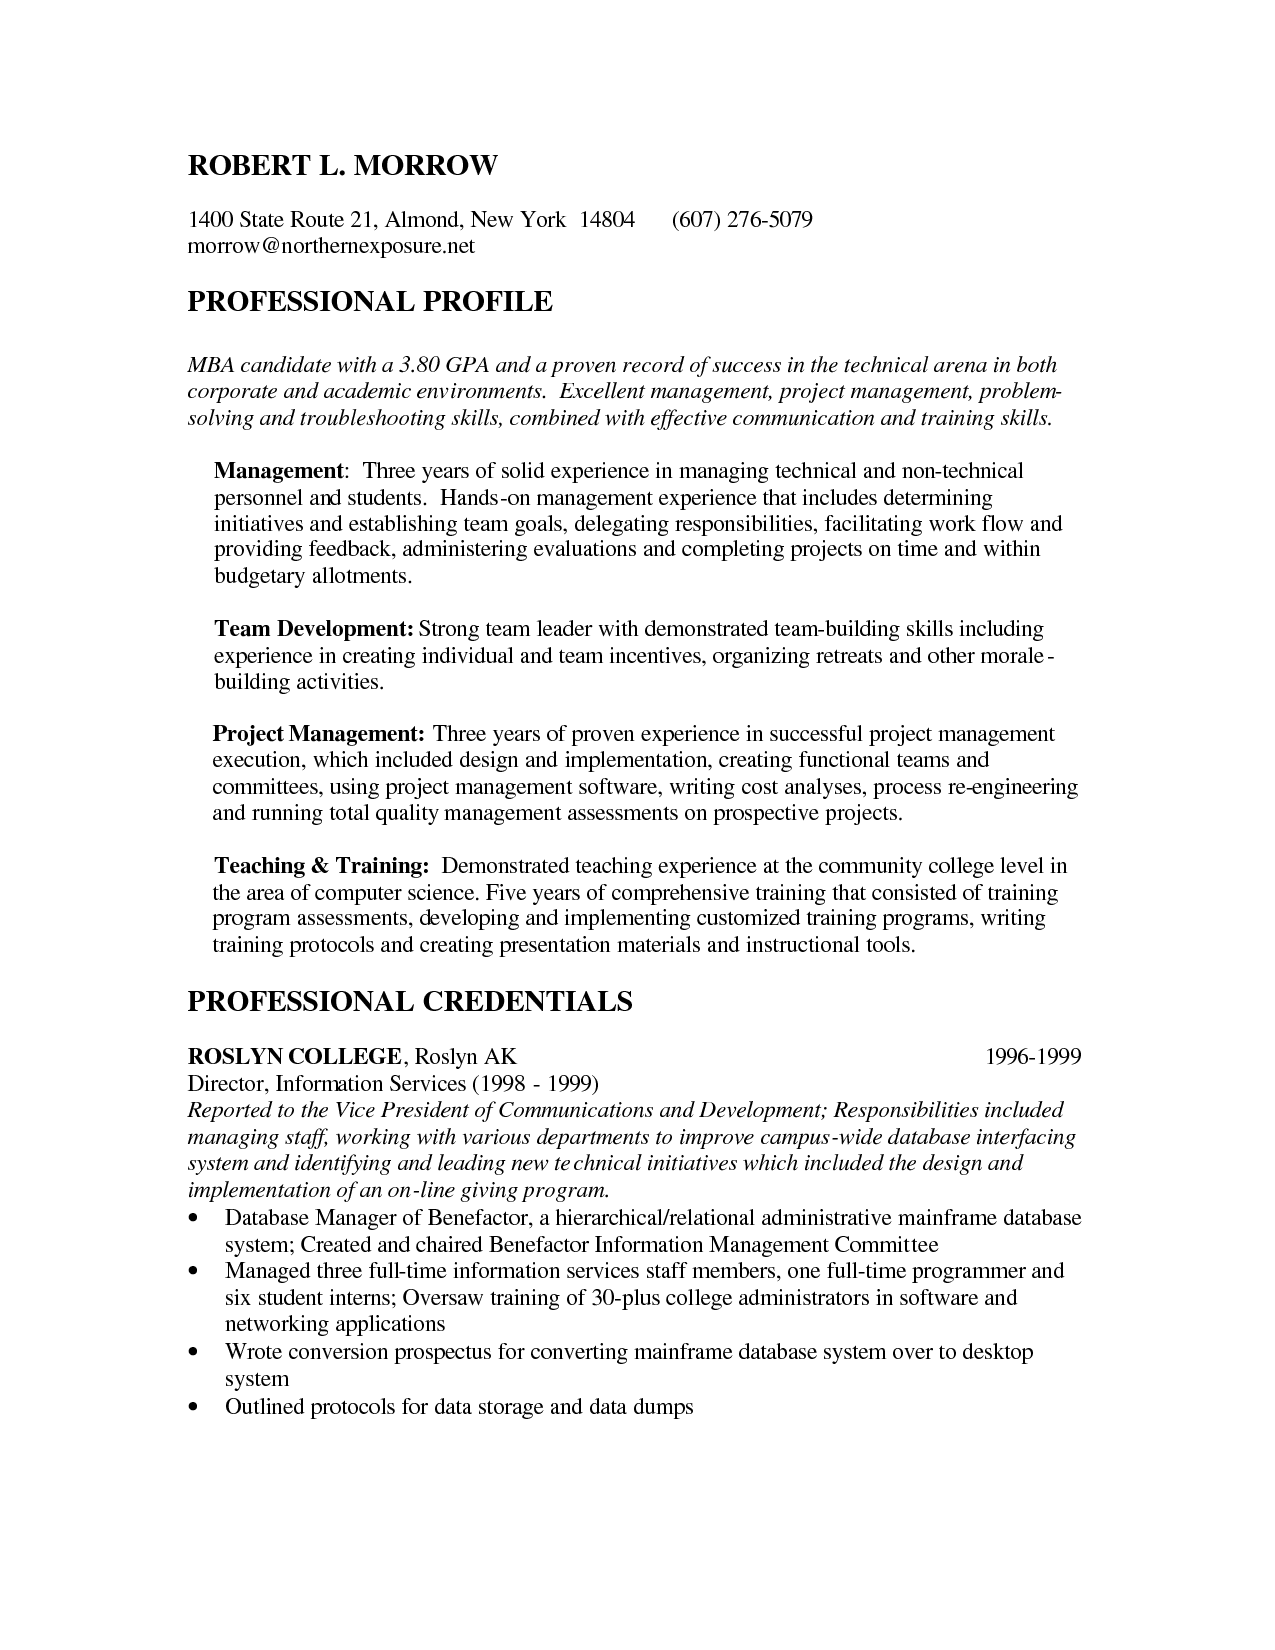 Example Of Professional Resume Pinjobresume On Resume Career Termplate Free  Pinterest